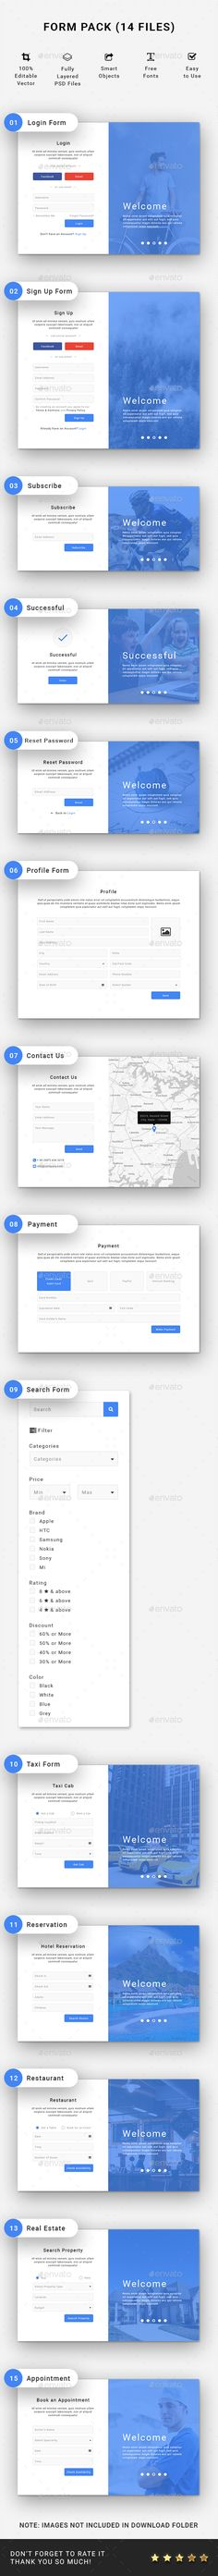 Web Form Design Template PSD. Download Web Design, Form Design, Graphic Design, Web Forms, Vector Shapes, Packing, Ads, Templates, Fonts